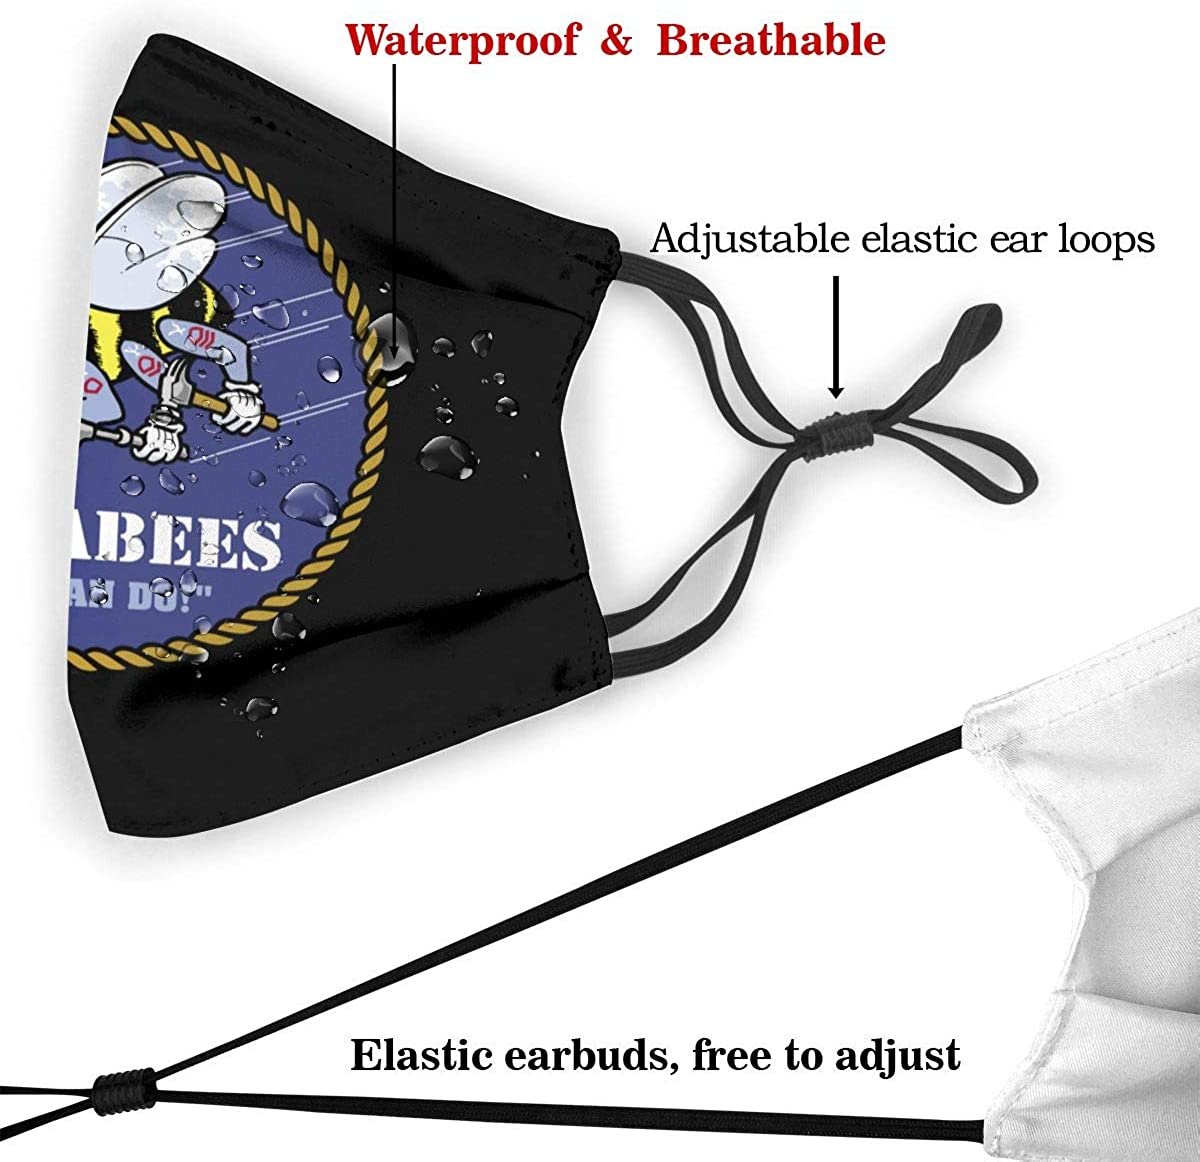 Us Navy Seabees Bandanas for Men Face Scarf Neck Gaiter Pm2.5 with Filters M